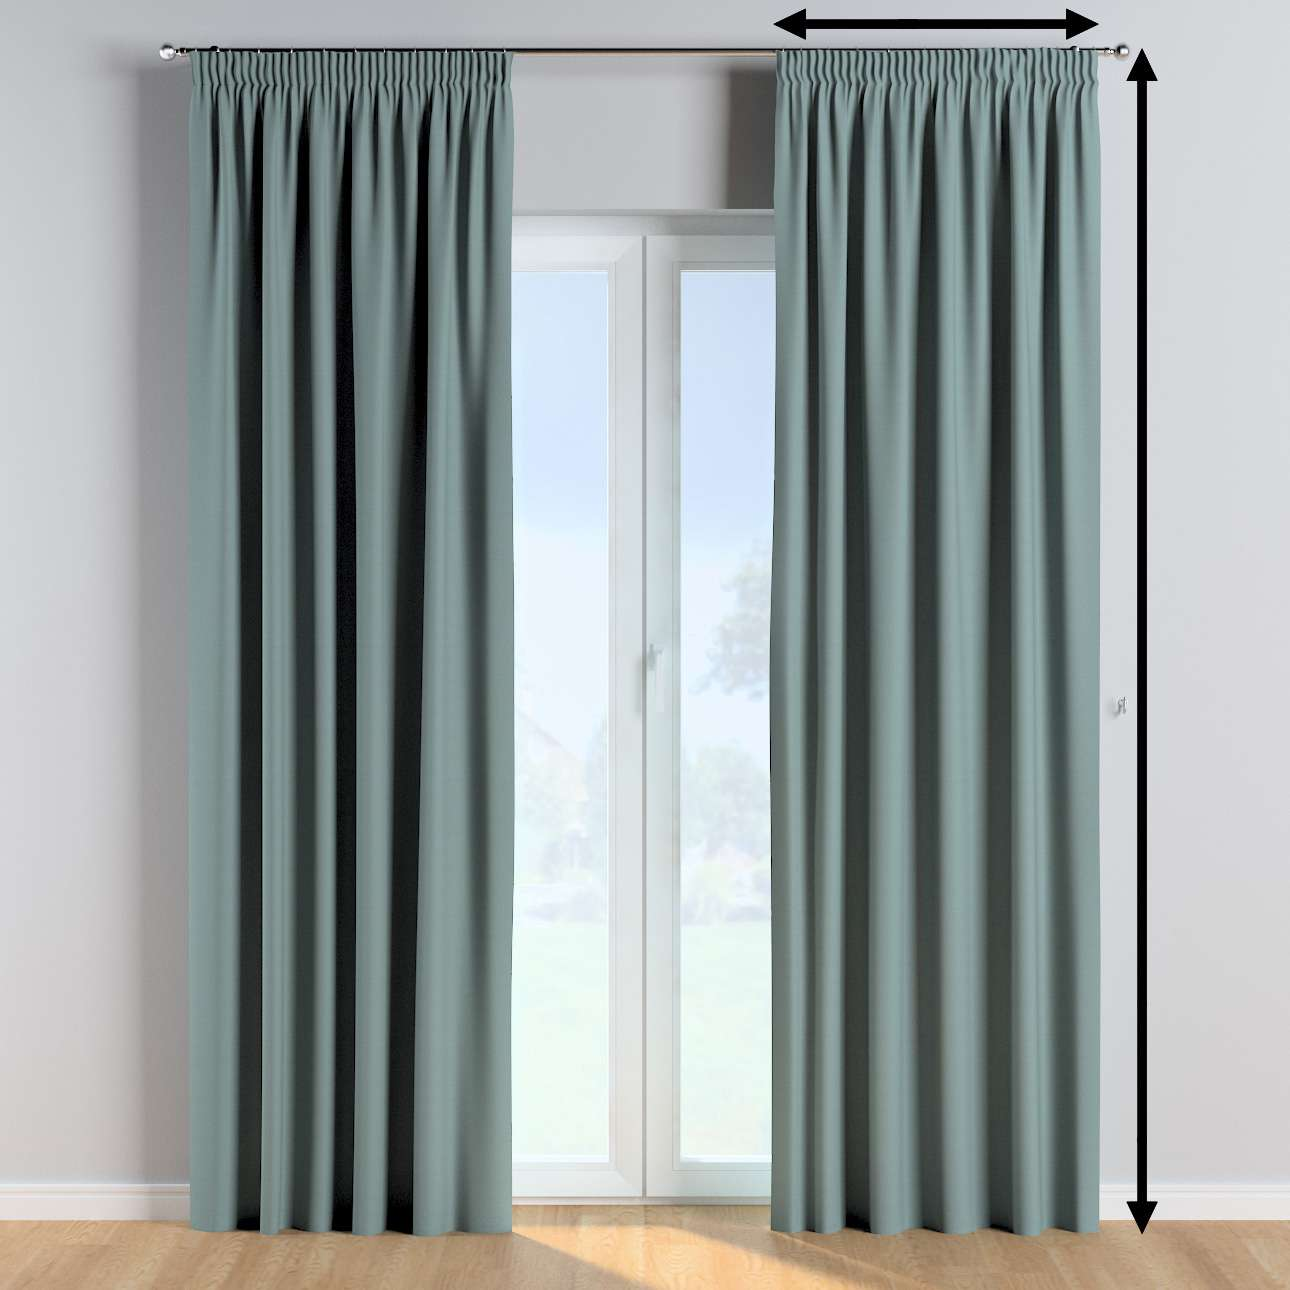 Pencil pleat curtains in collection Cotton Story, fabric: 702-40